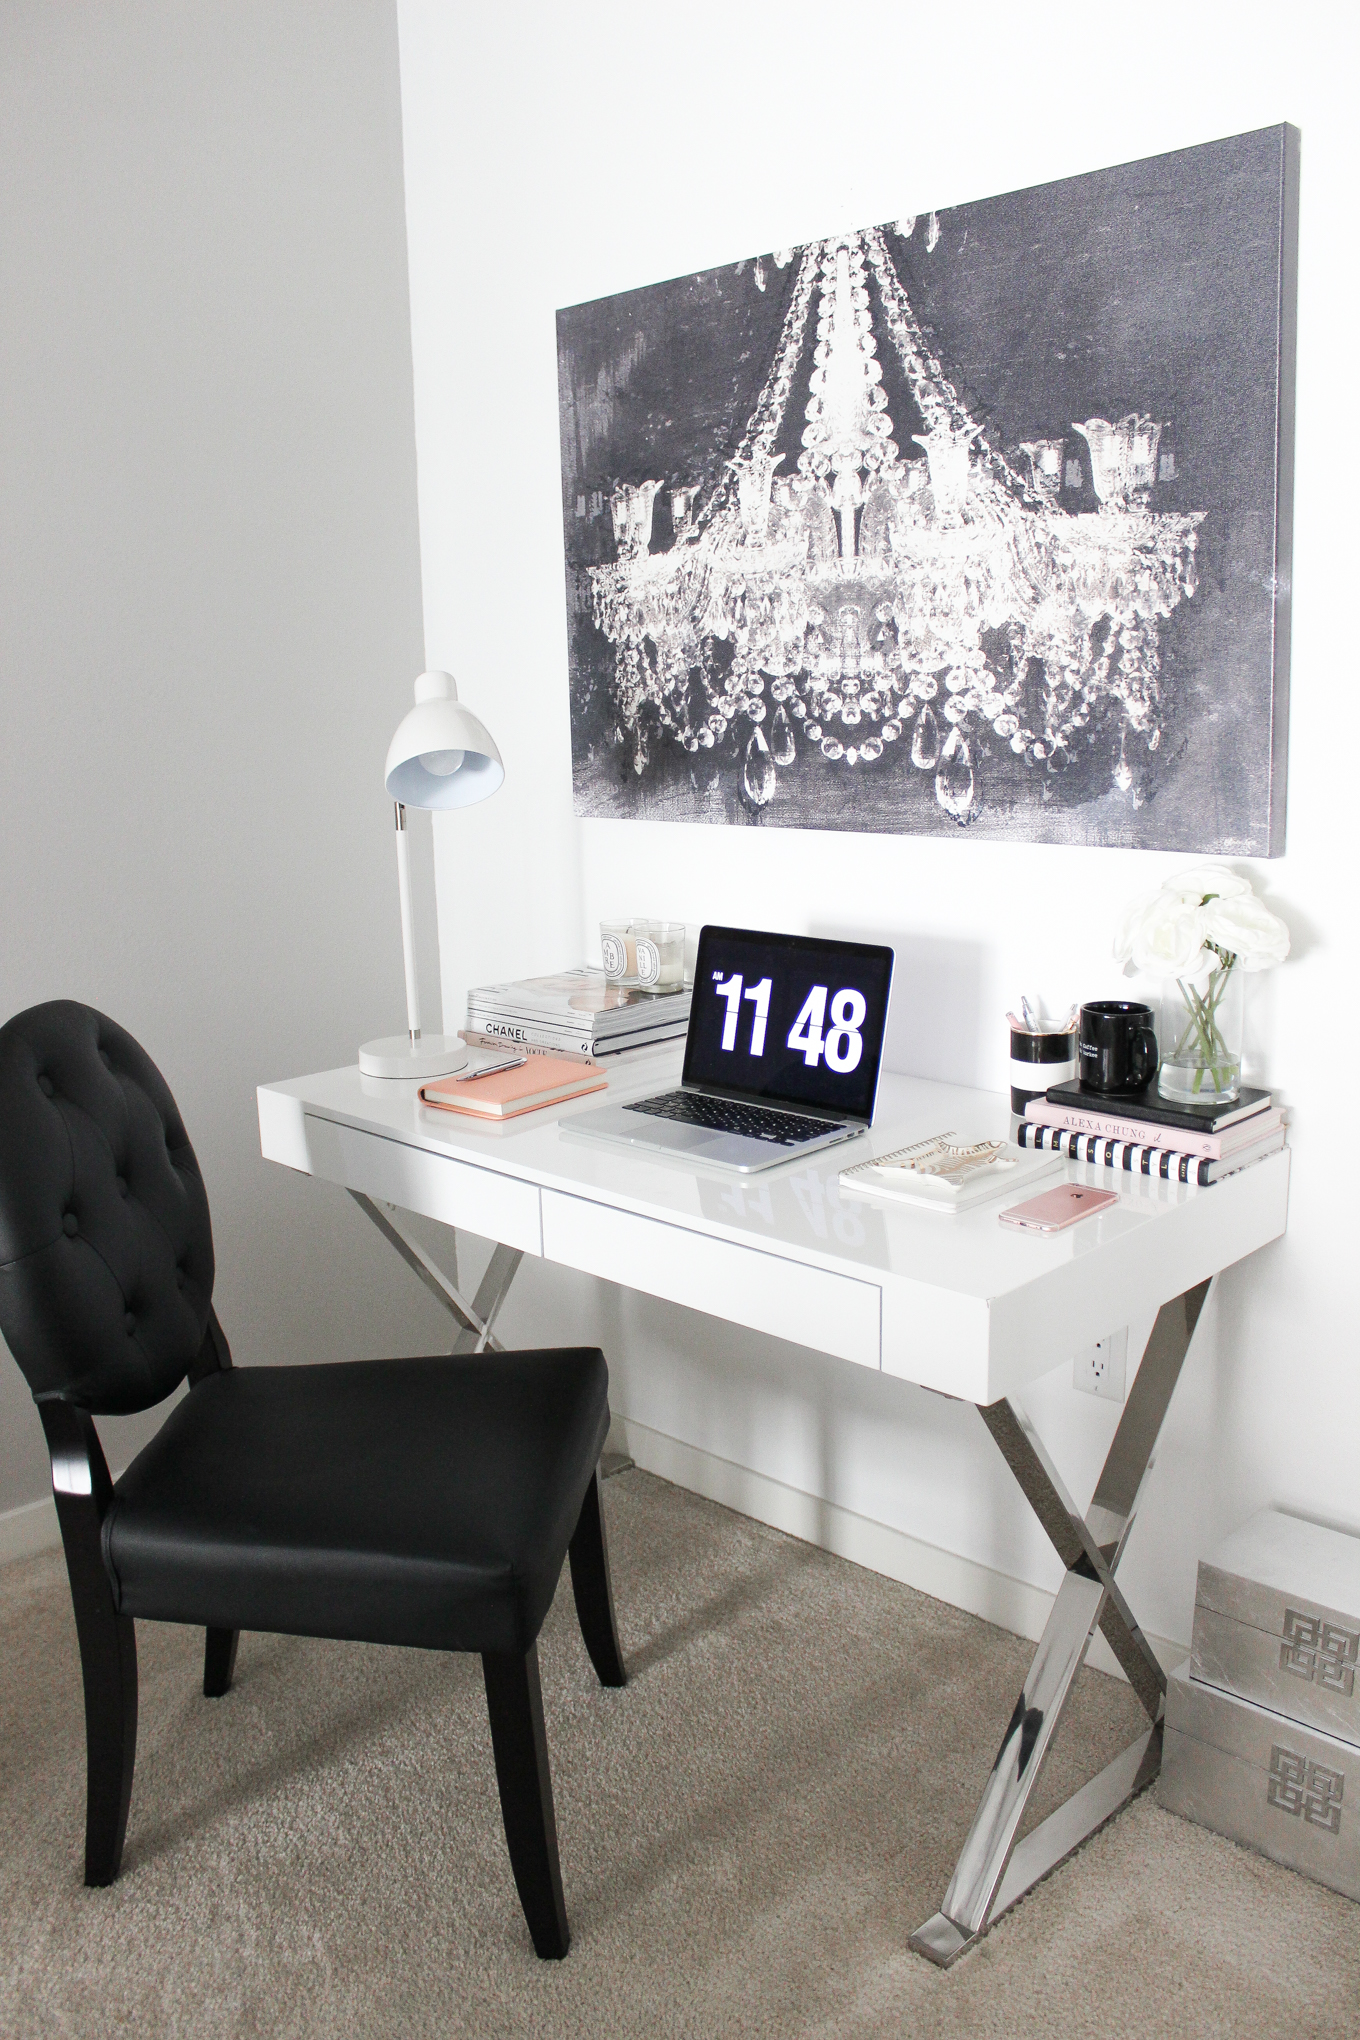 Blondie in the City | Office Space Decor, Desk Decor, Black and White office Decor, White Office Desk, Black Tufted Chair